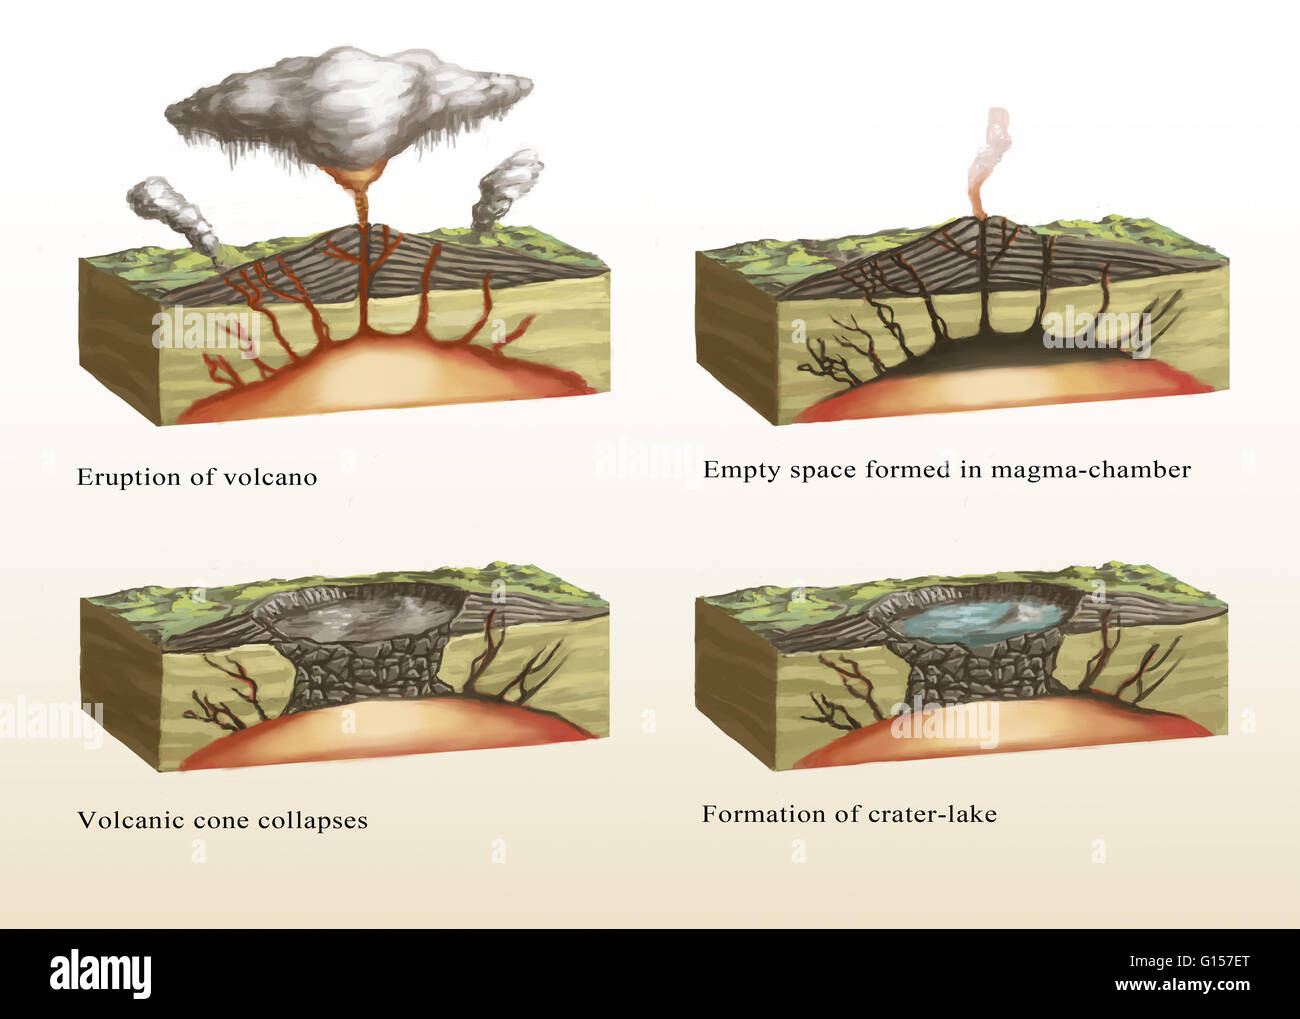 Illustration Showing The Formation Of A Caldera  Stage 1